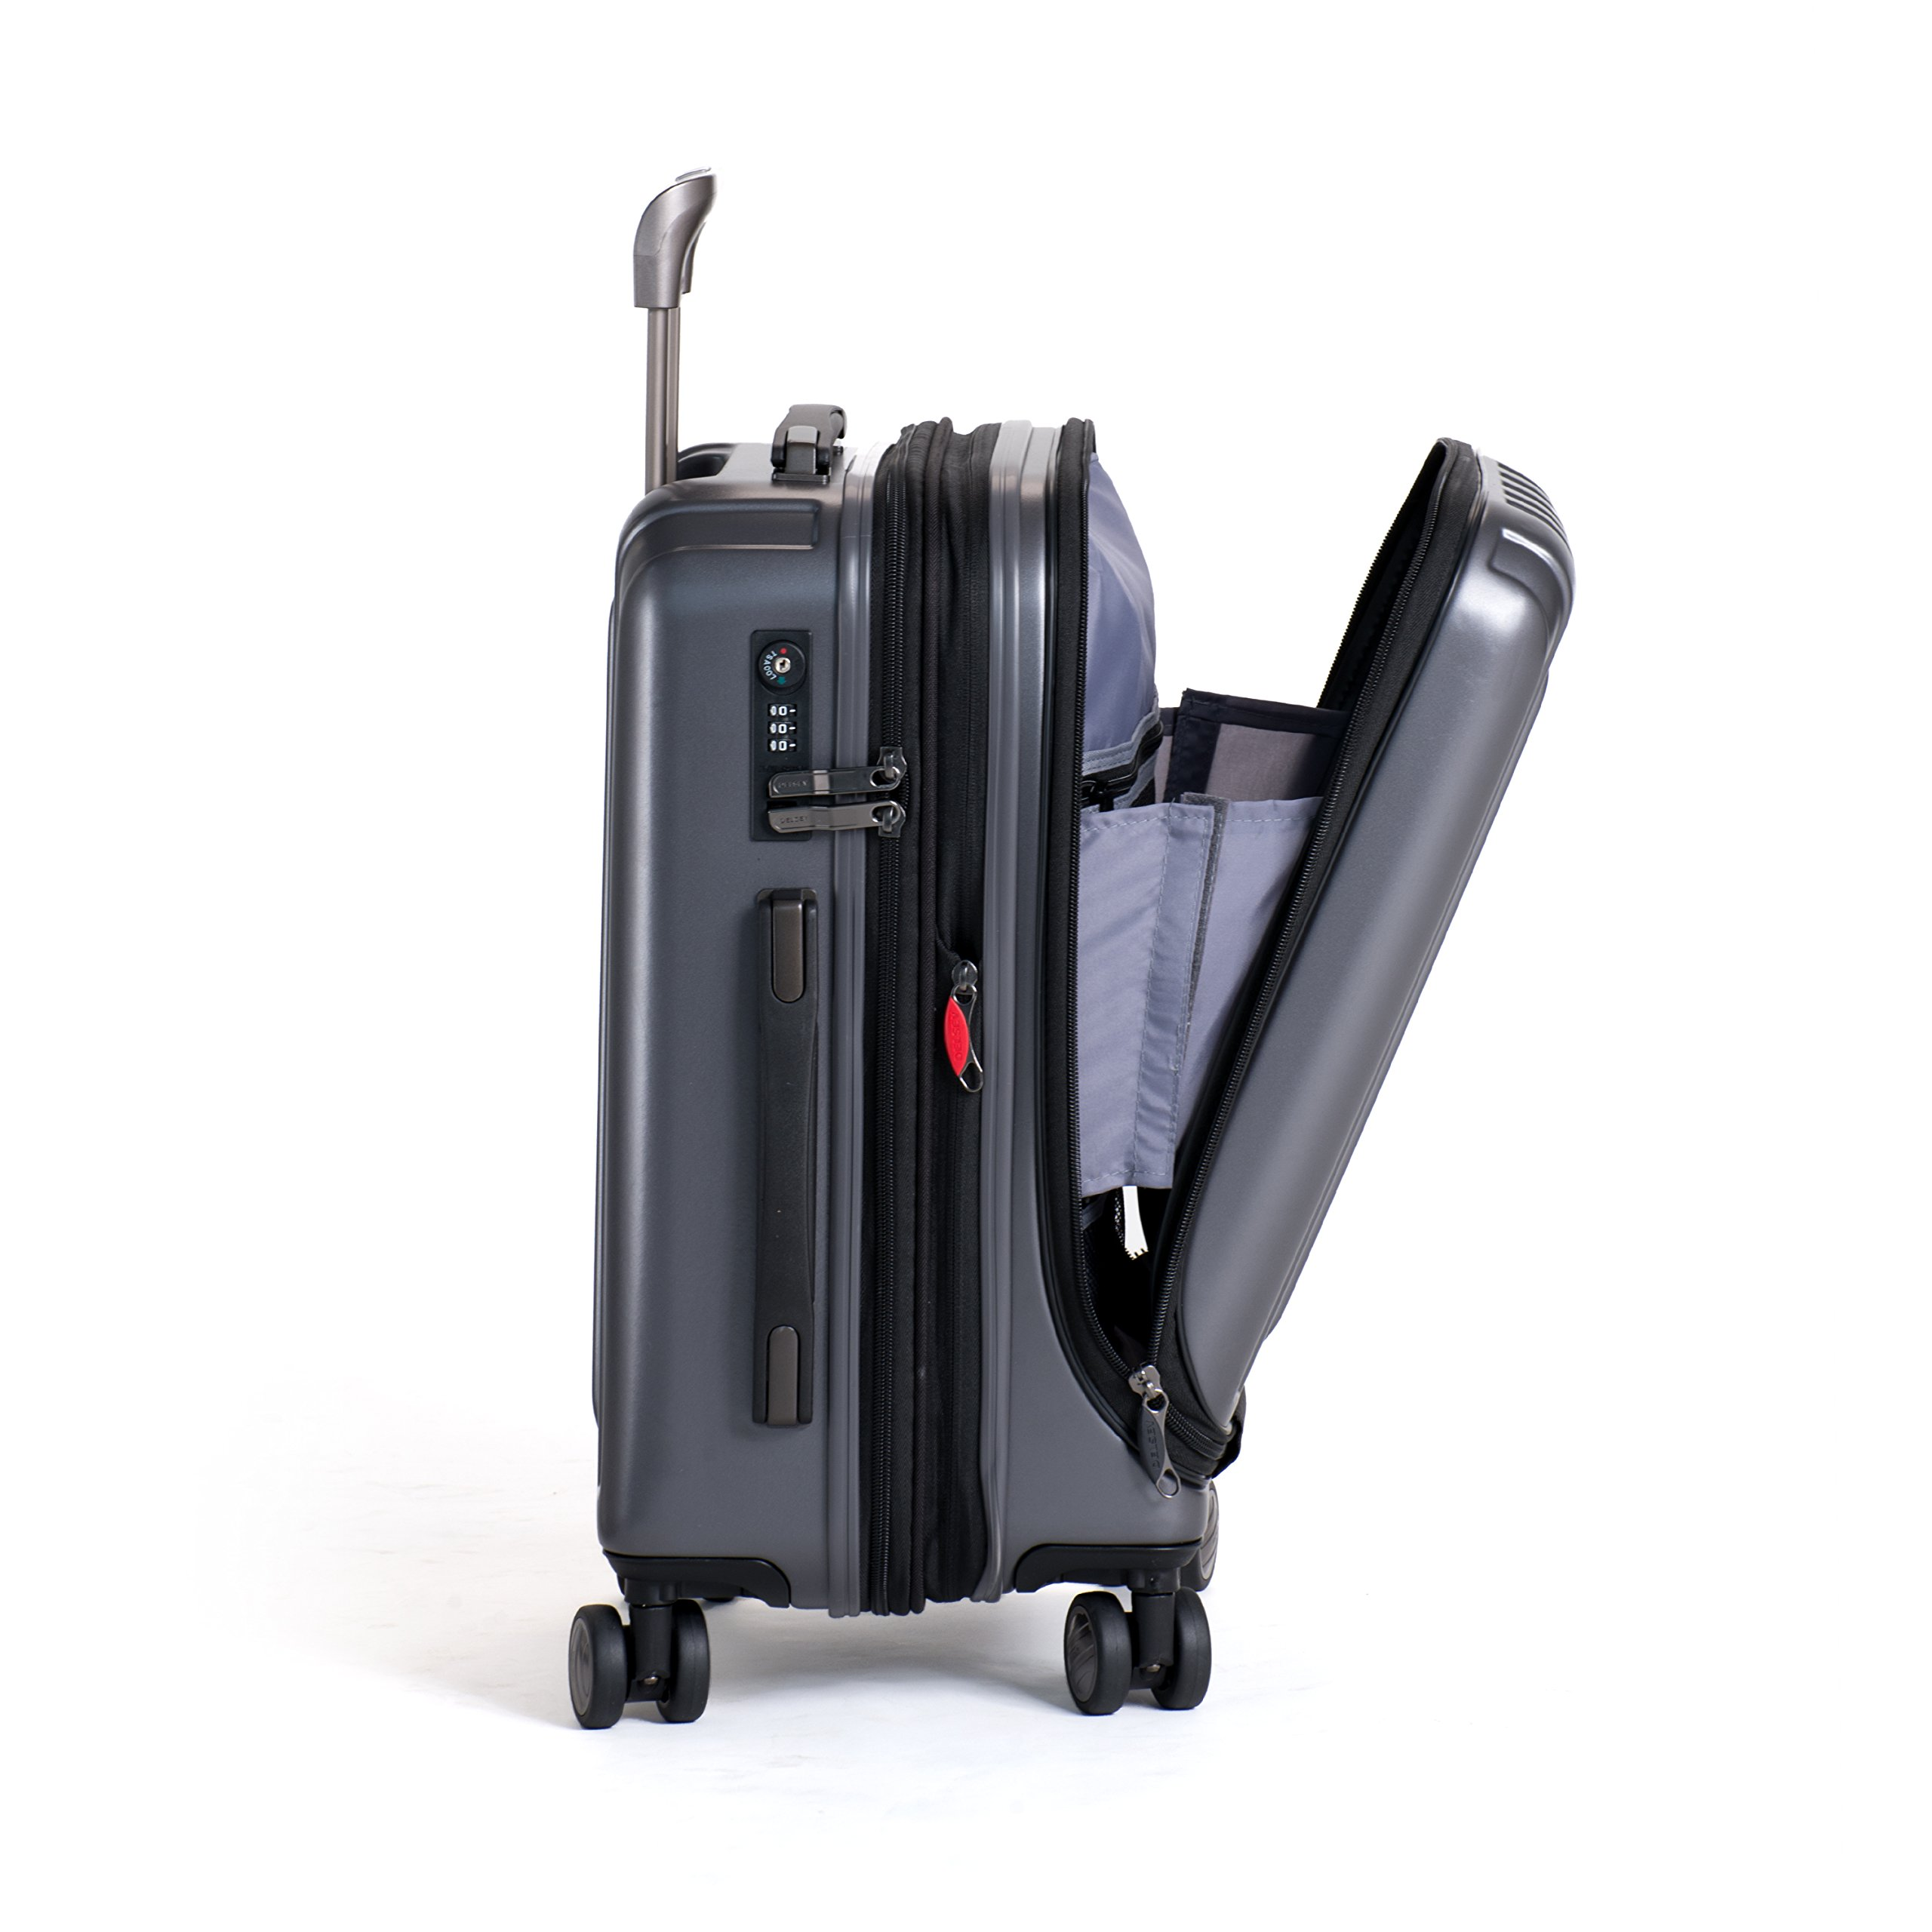 36f6ef0b86 Delsey Luggage Helium Titanium International Carry-On EXP Spinner Trolley  Metallic